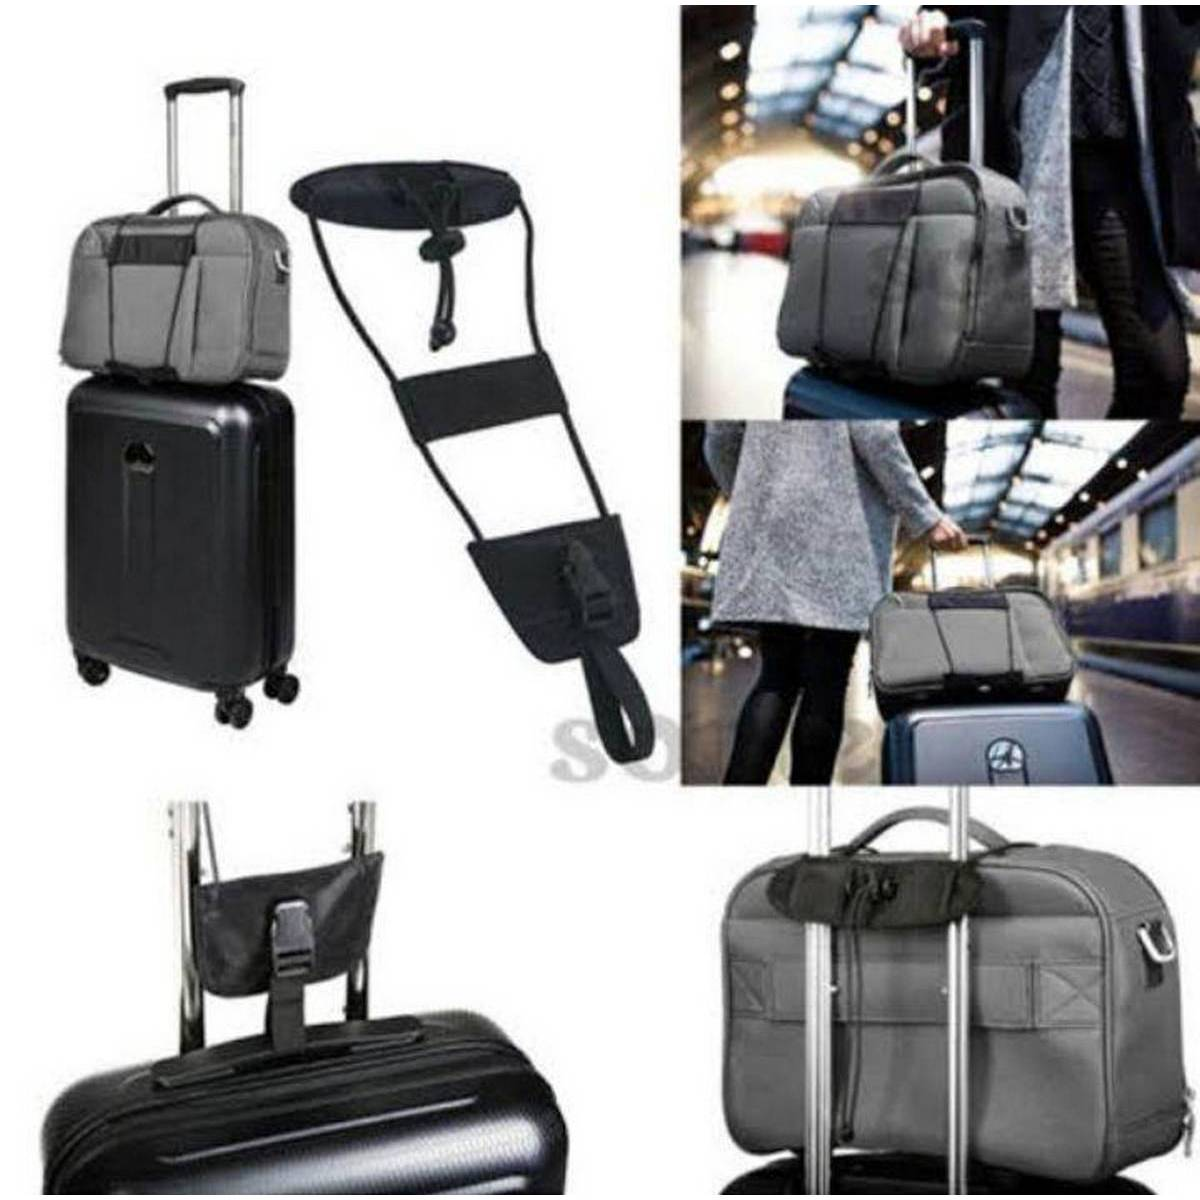 New Practical Bag Bungee Luggage Backpack Carrier Strap Outdoor Travel Luggage Suitcase Belt Adjustable Bag Bungee Strap.